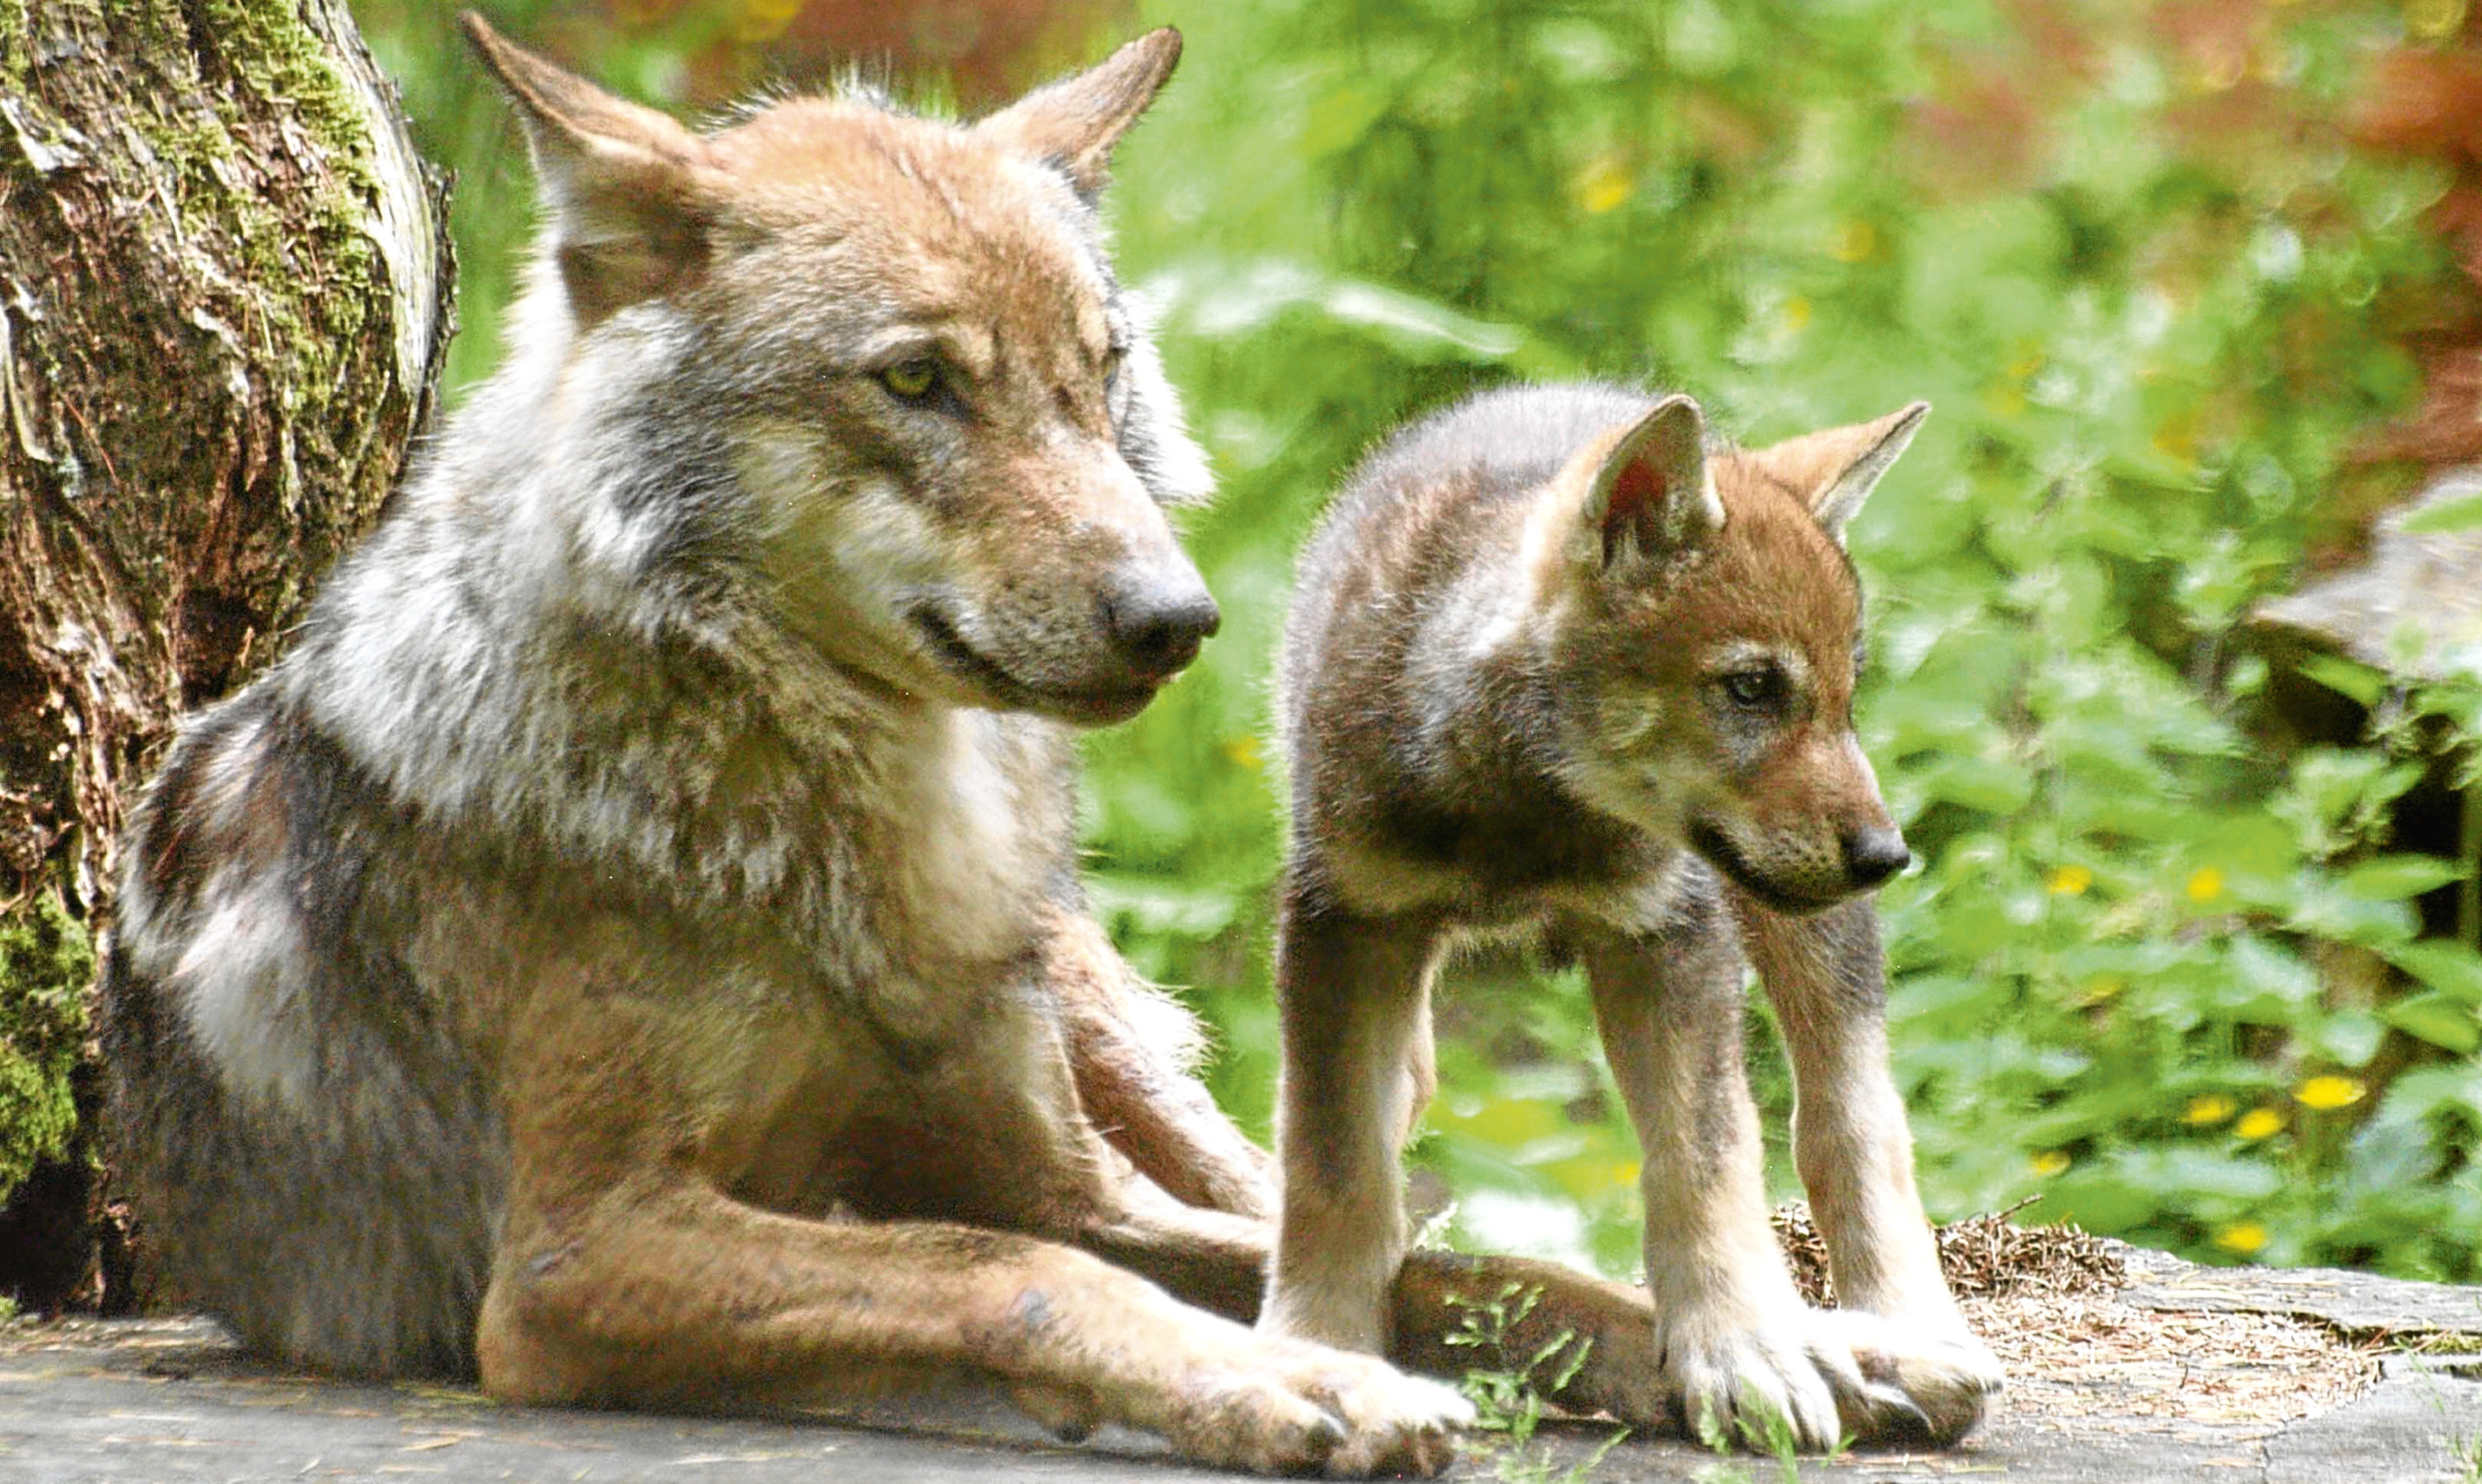 A wolf and cub in captivity at Camperdown Park in Dundee. The question of the animals reintroduction to the wild continues to spark heated debate.